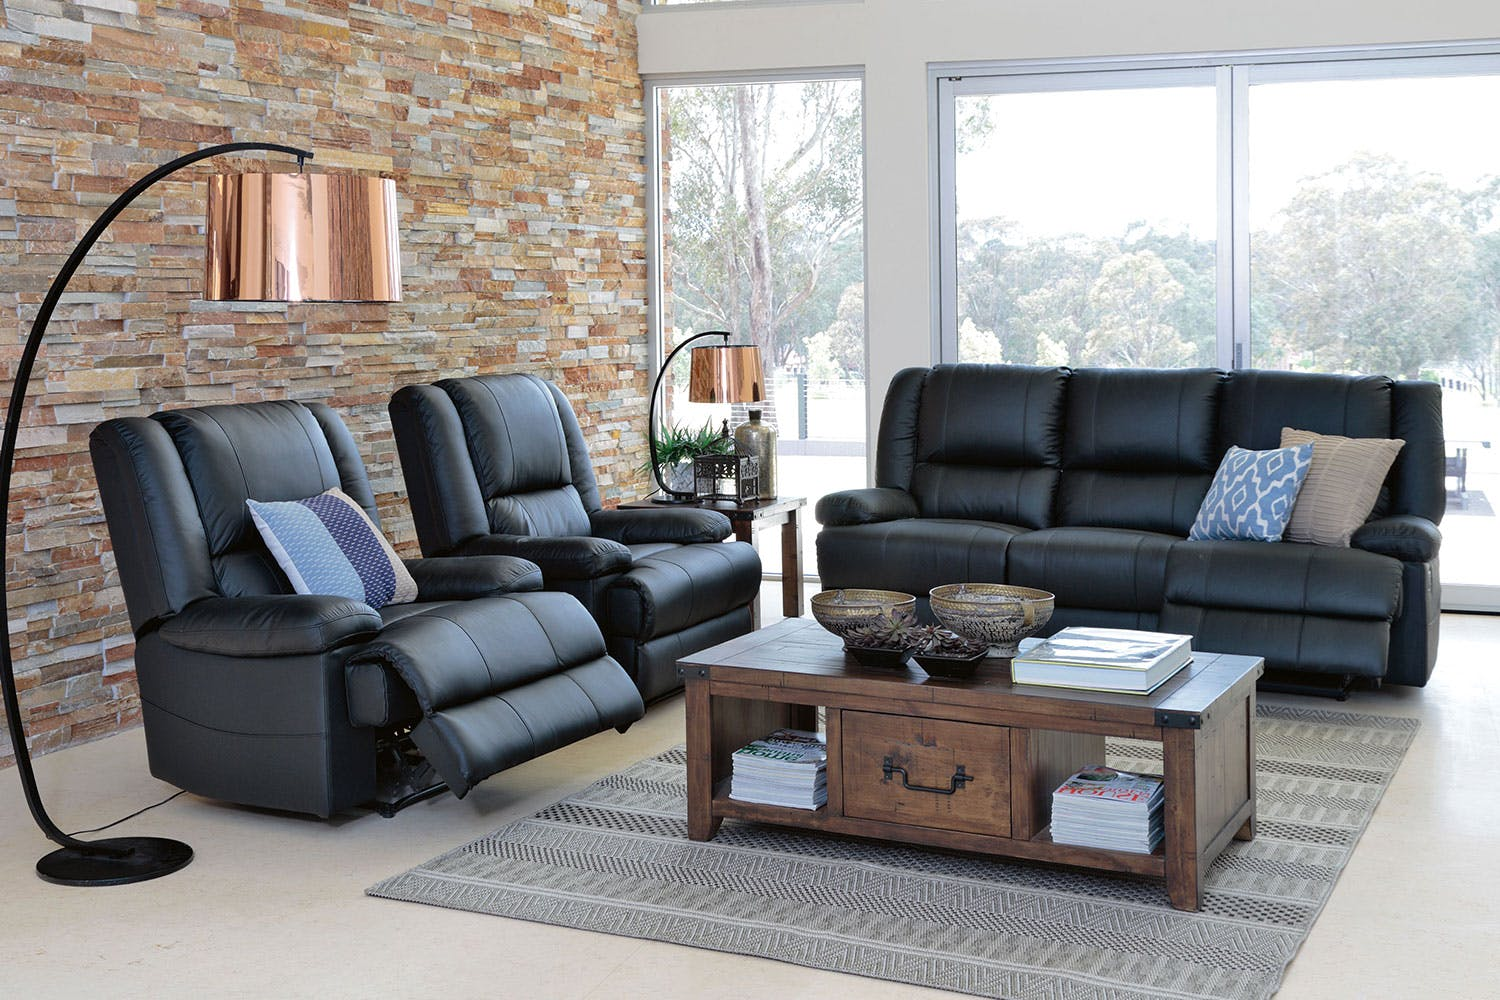 Leonardo leather large recliner sofa review home for Furniture 3 piece suites